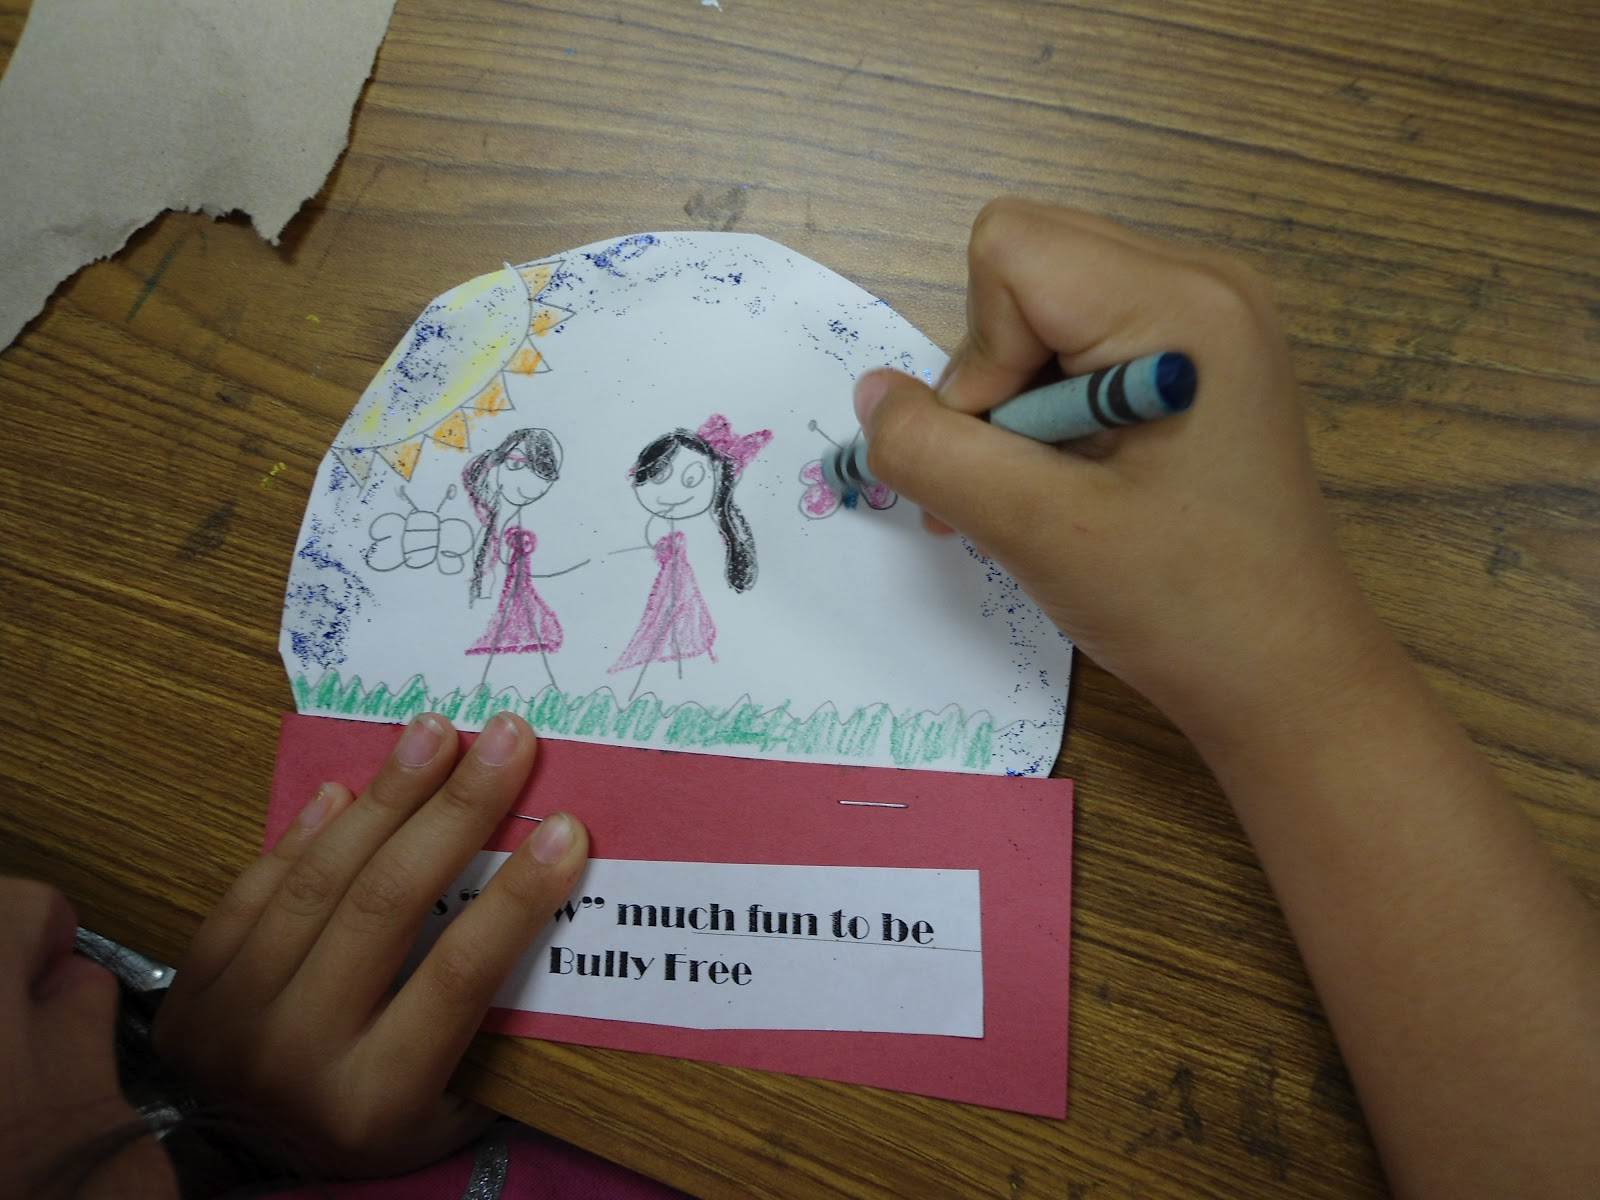 Elementary School Counselor Using Expressive Art